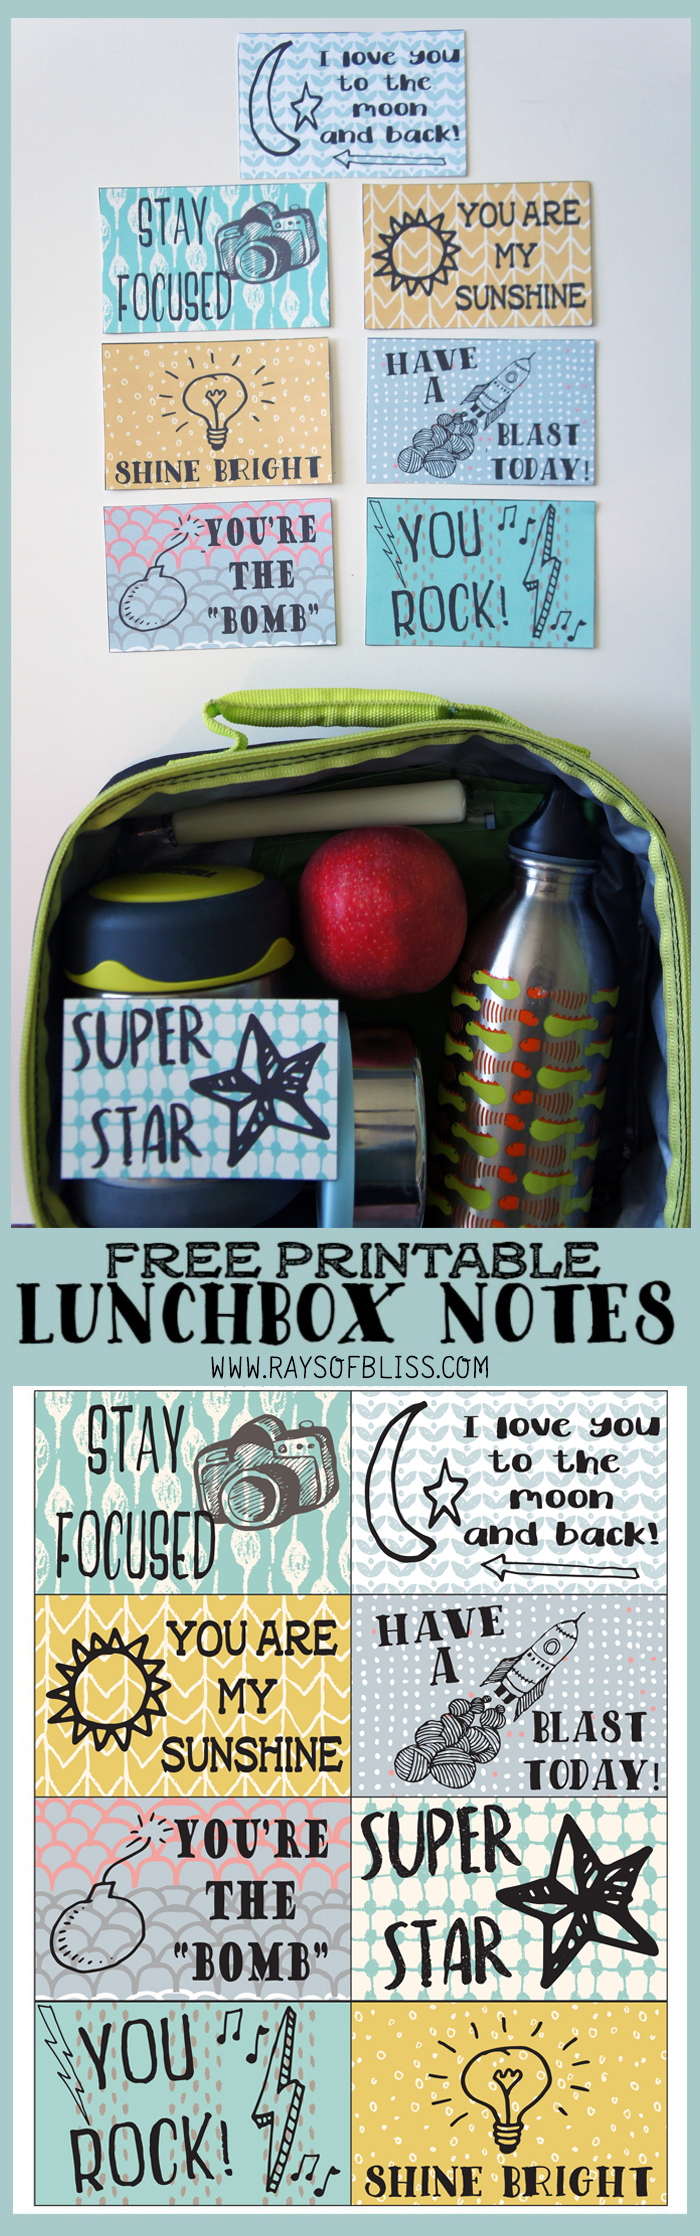 School lunchbox Notes Free Printable from Rays of Bliss